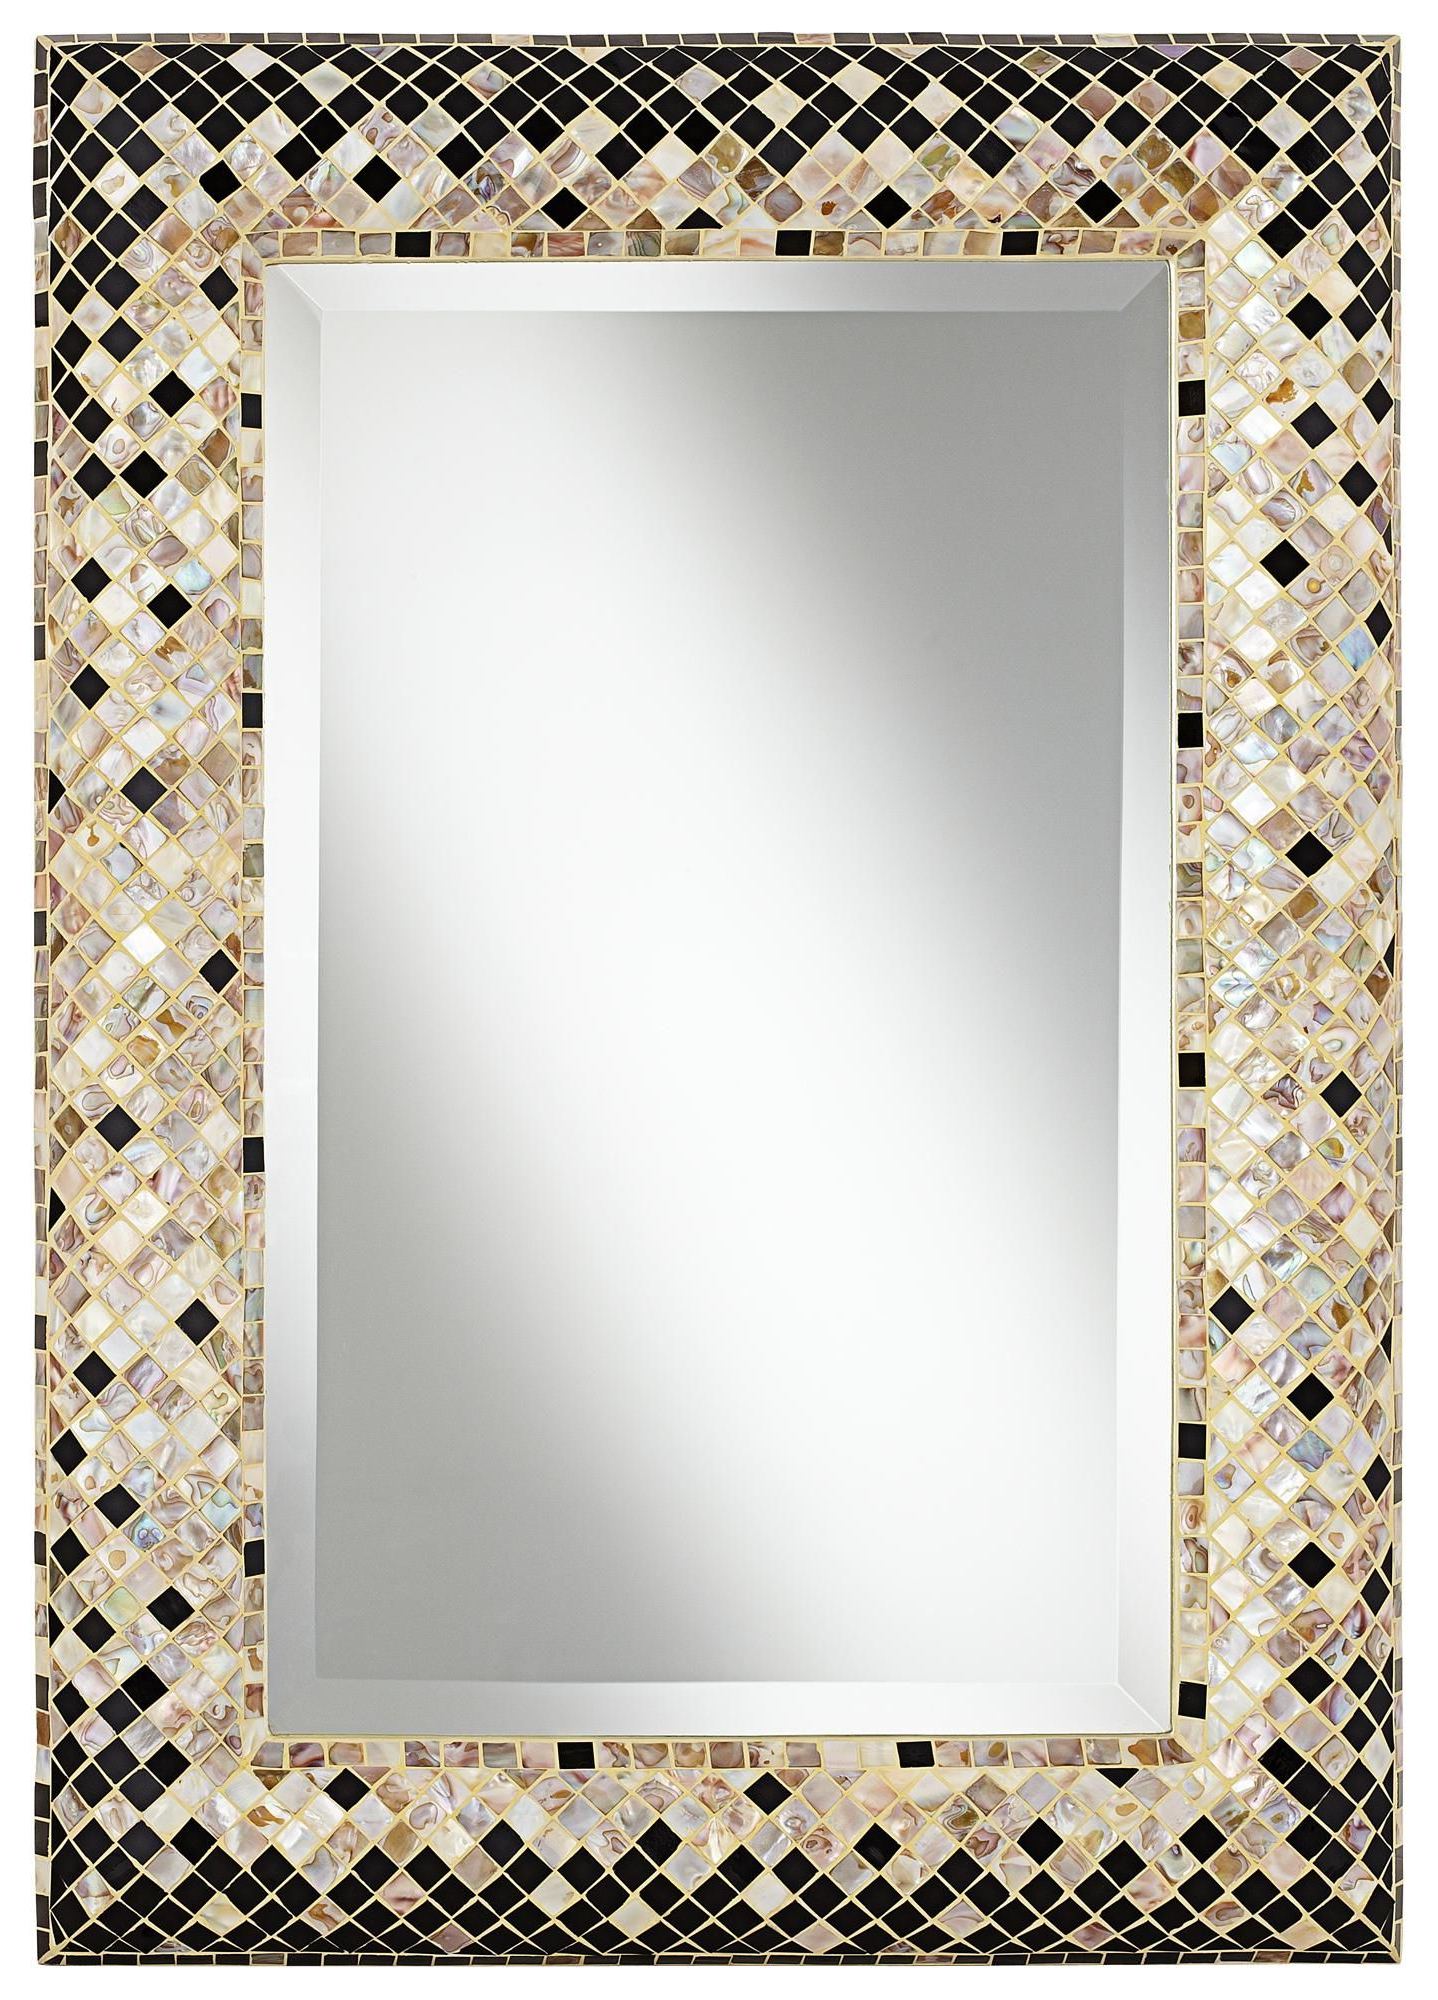 """Mosaic Wall Mirrors Inside Most Recently Released Checkered Sea Shell 33"""" Mosaic Wall Mirror (View 7 of 20)"""